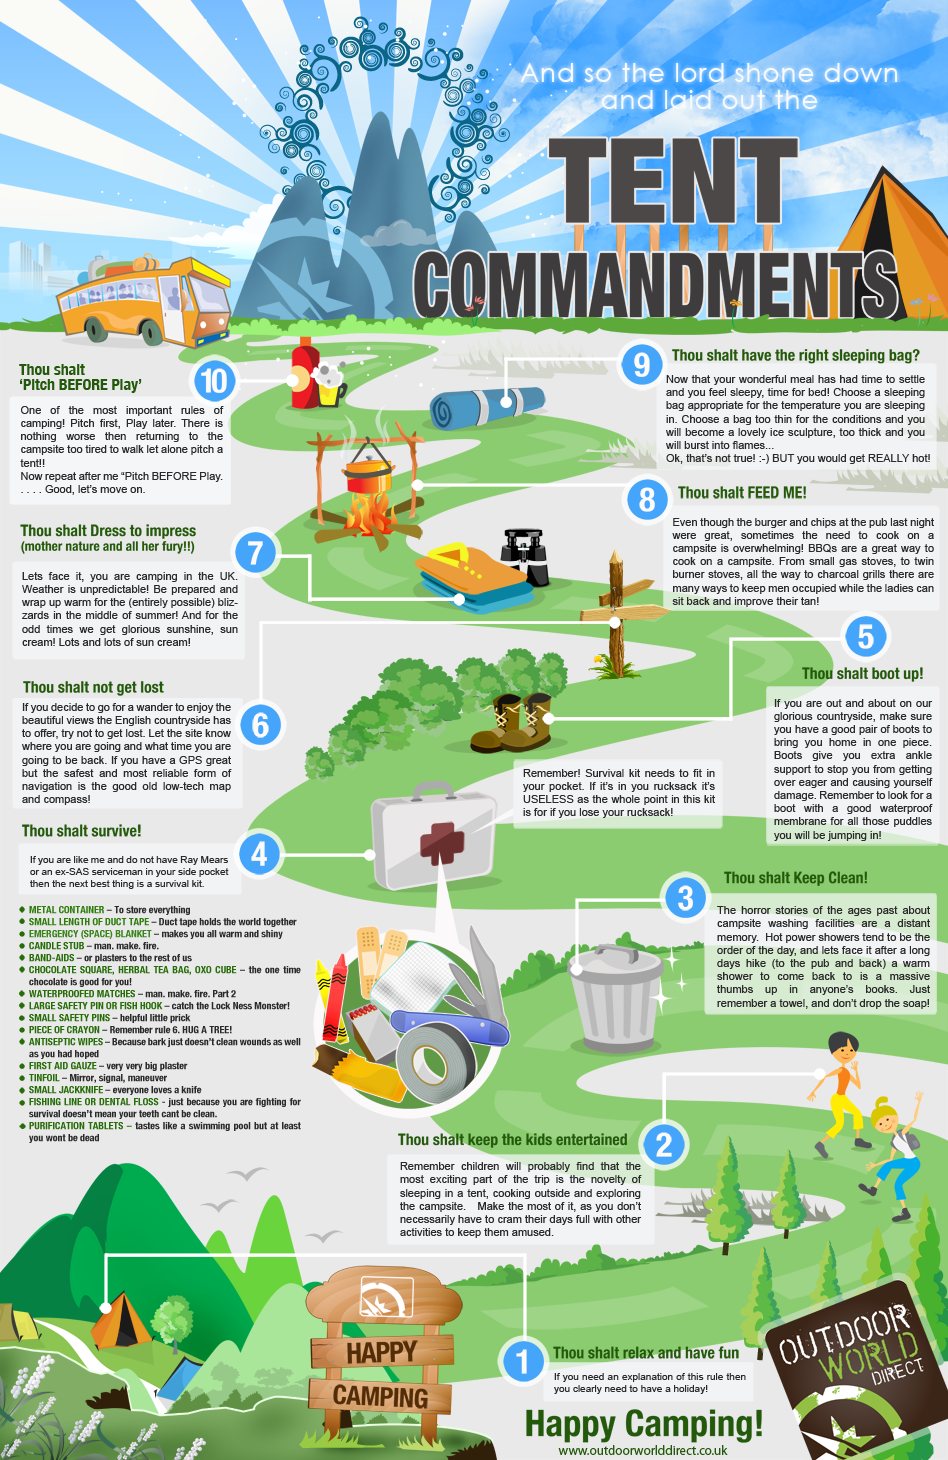 Tent commandments